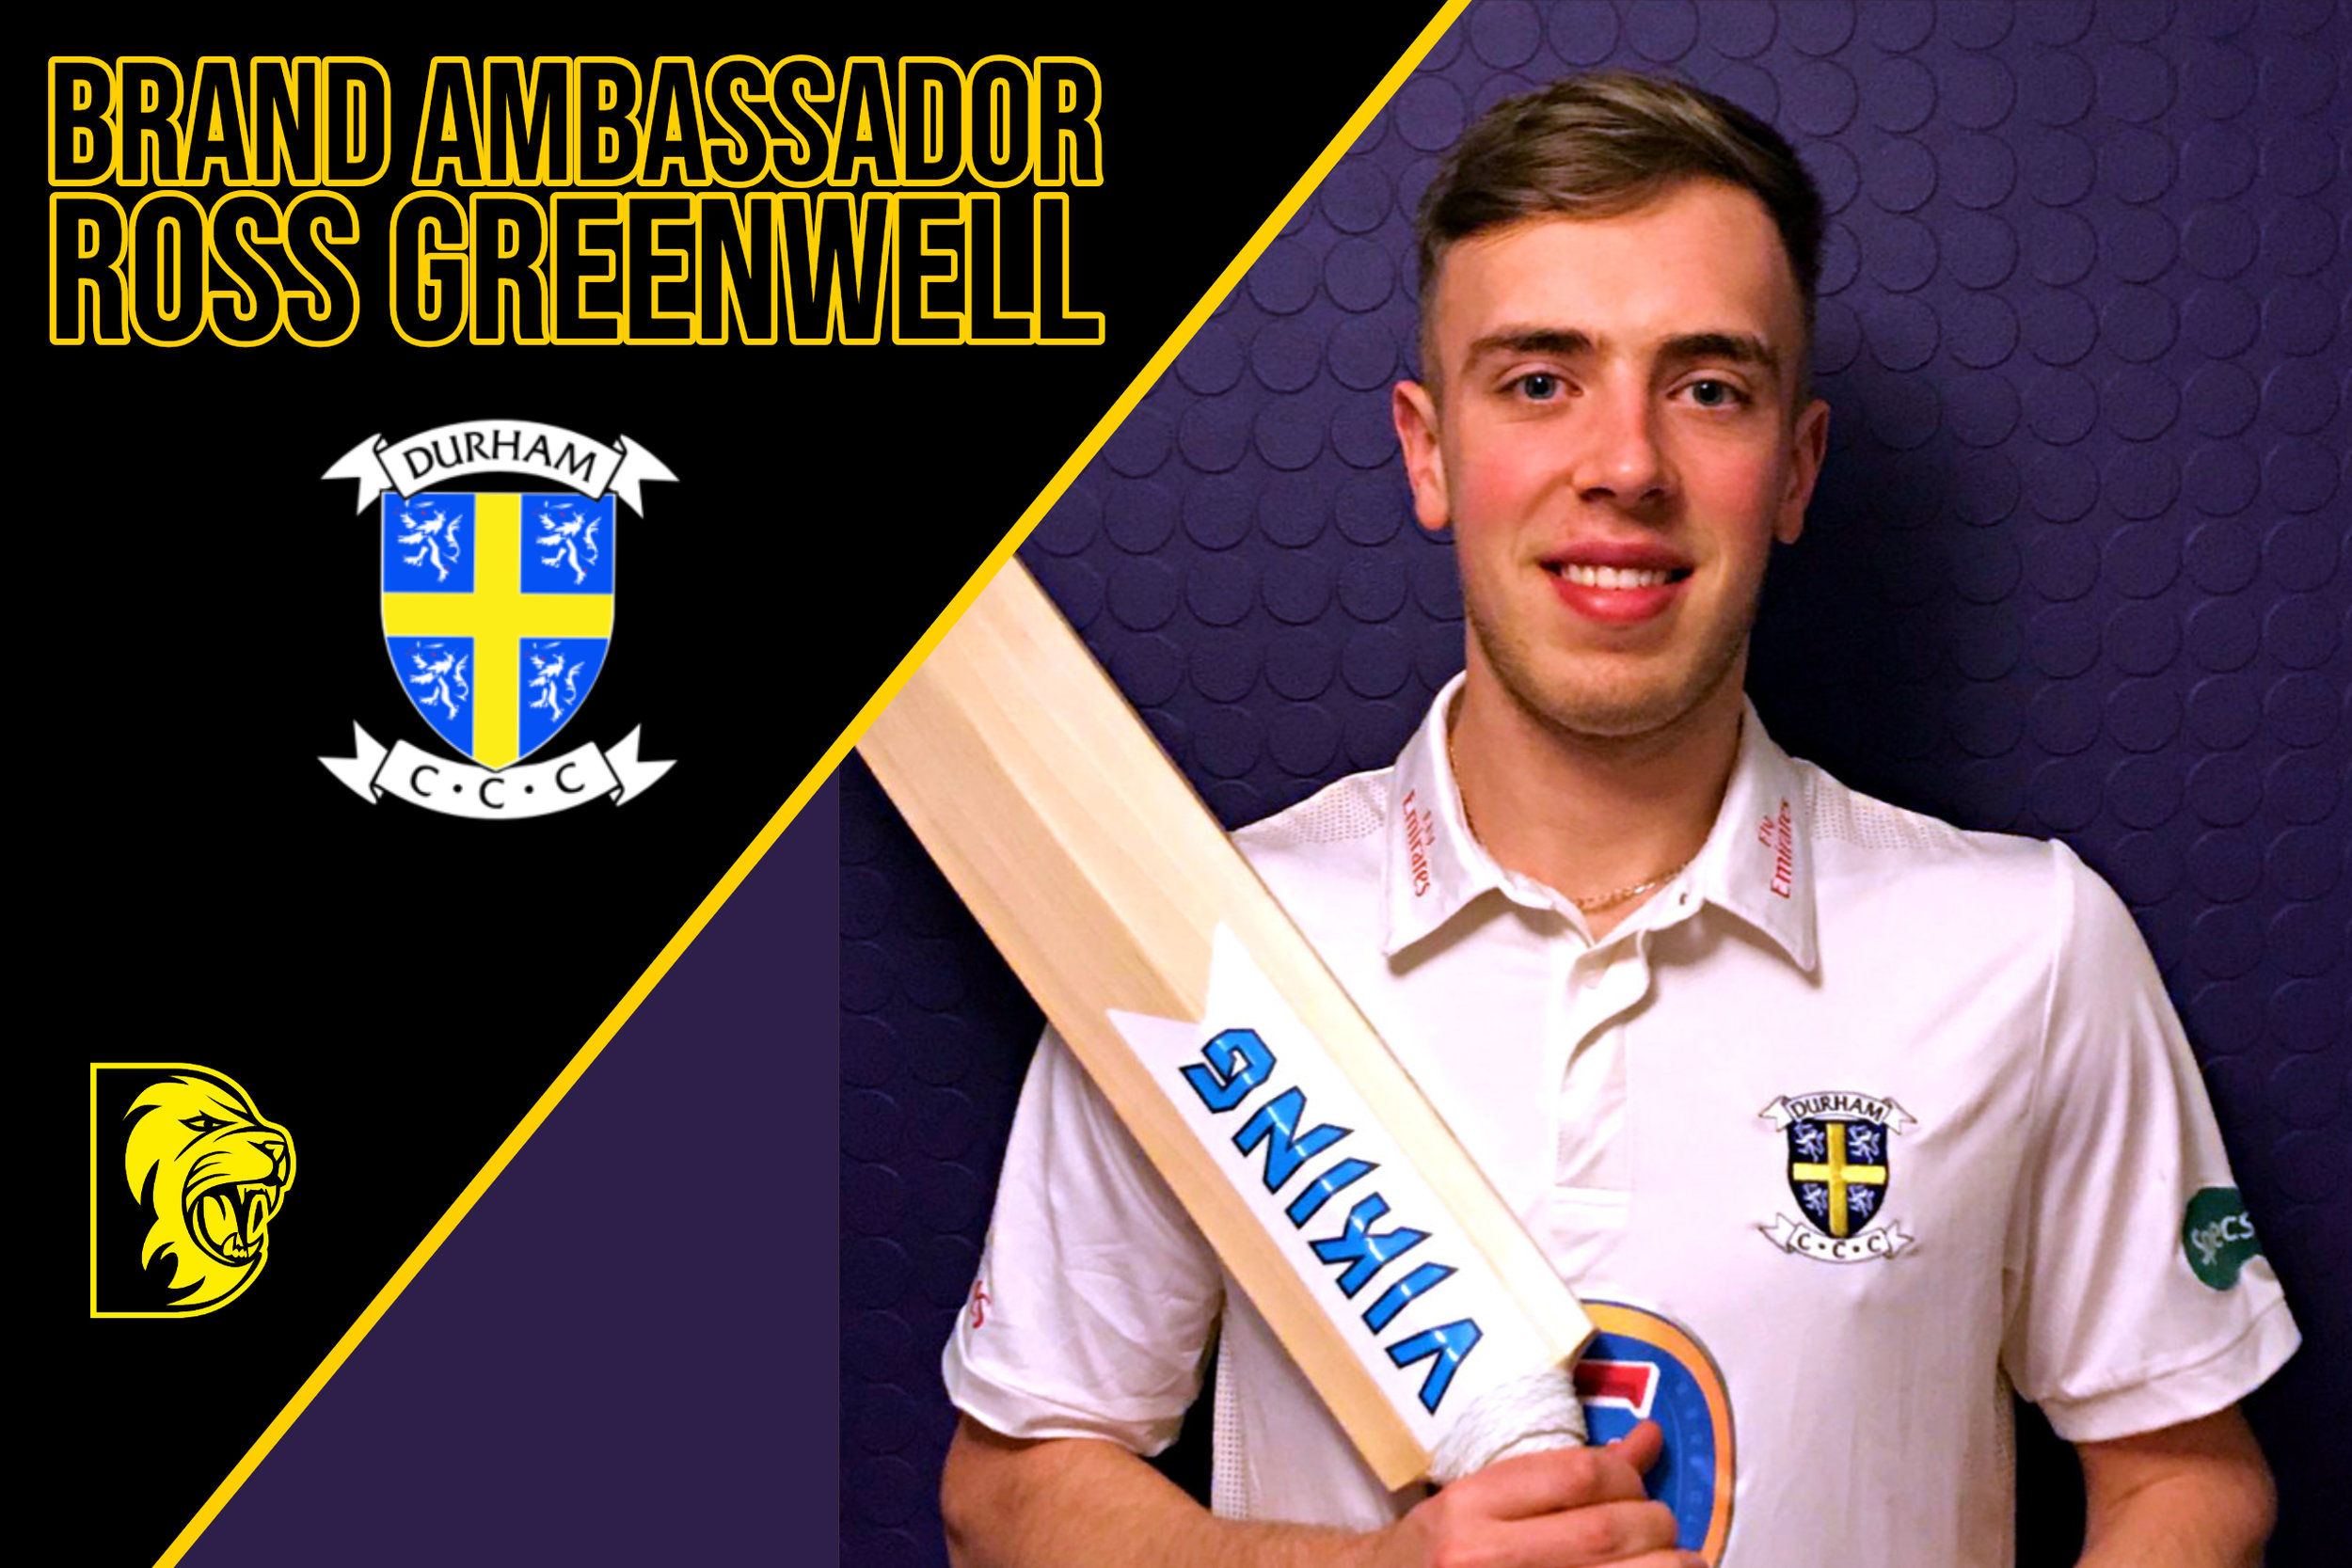 Ross Greenwell - Ross is a 20 years old cricketer. A right Handed Batsmen who can bowl right arm fast medium. Ross plays for Durham.Ross is using Odin and Hel-Fyr for 2019.You can follow Ross on www.instagram.com/_rg.01